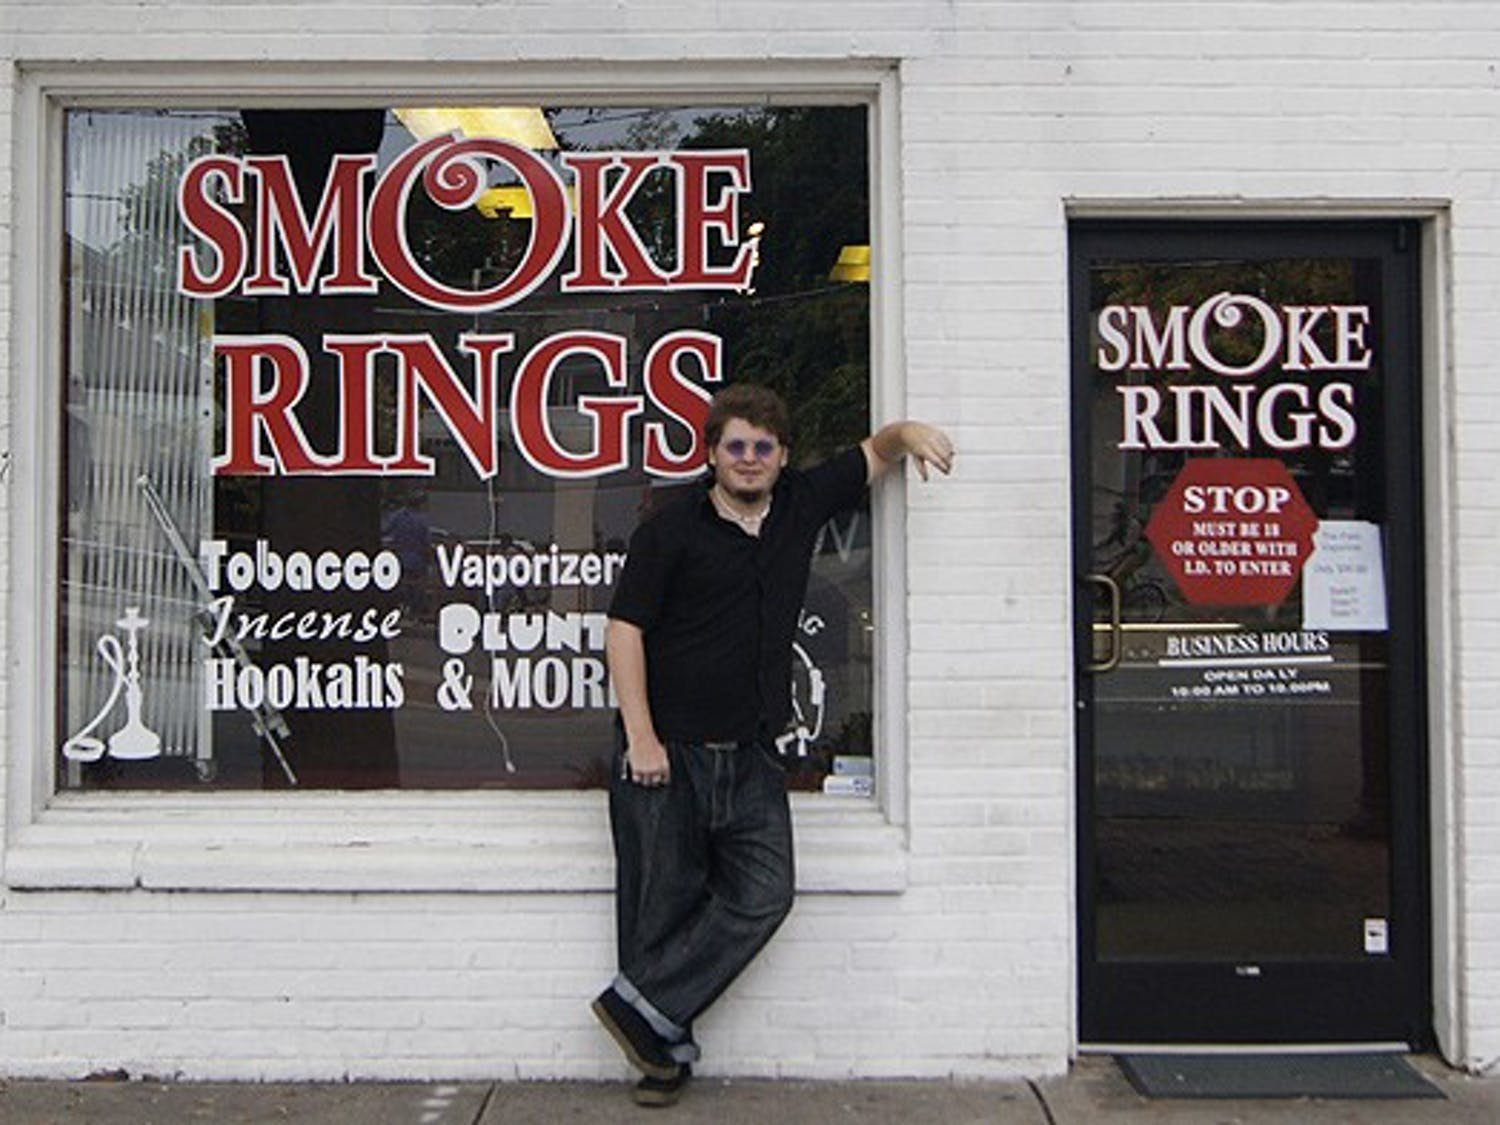 """Larry Webster, known as """"Crazy Larry"""" to his customers at the Smoke Rings smoke shop, has dreamed of working on Franklin St. since he was a kid.  He doesn't believe the county wide ban would affect the store's business terribly."""